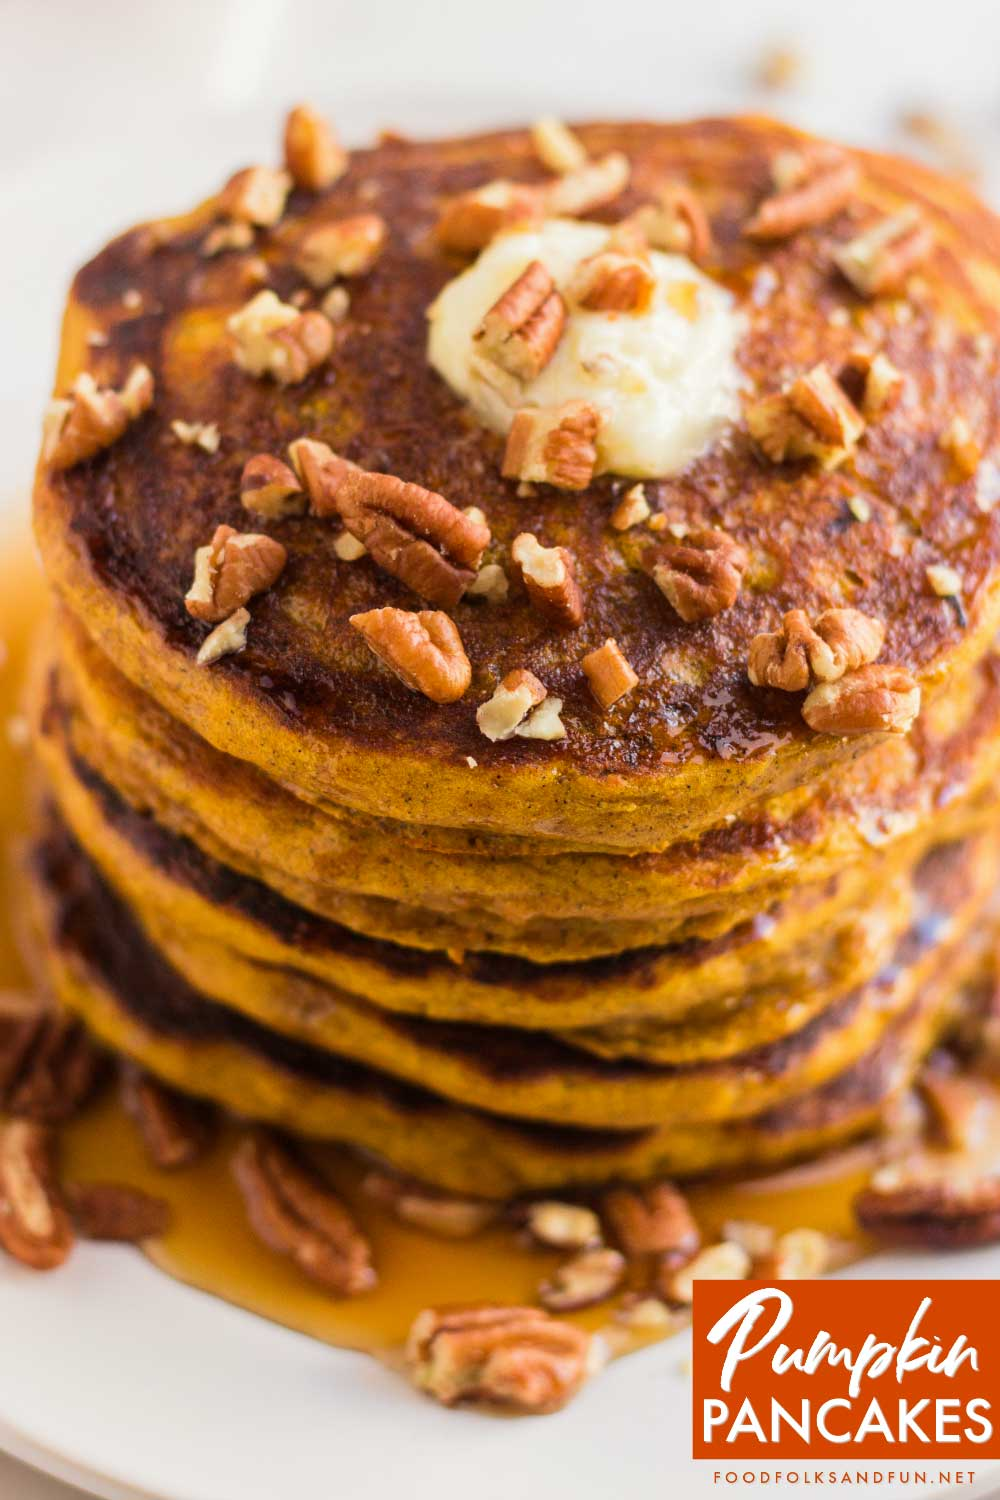 Top view of a stack of pumpkin pancakes